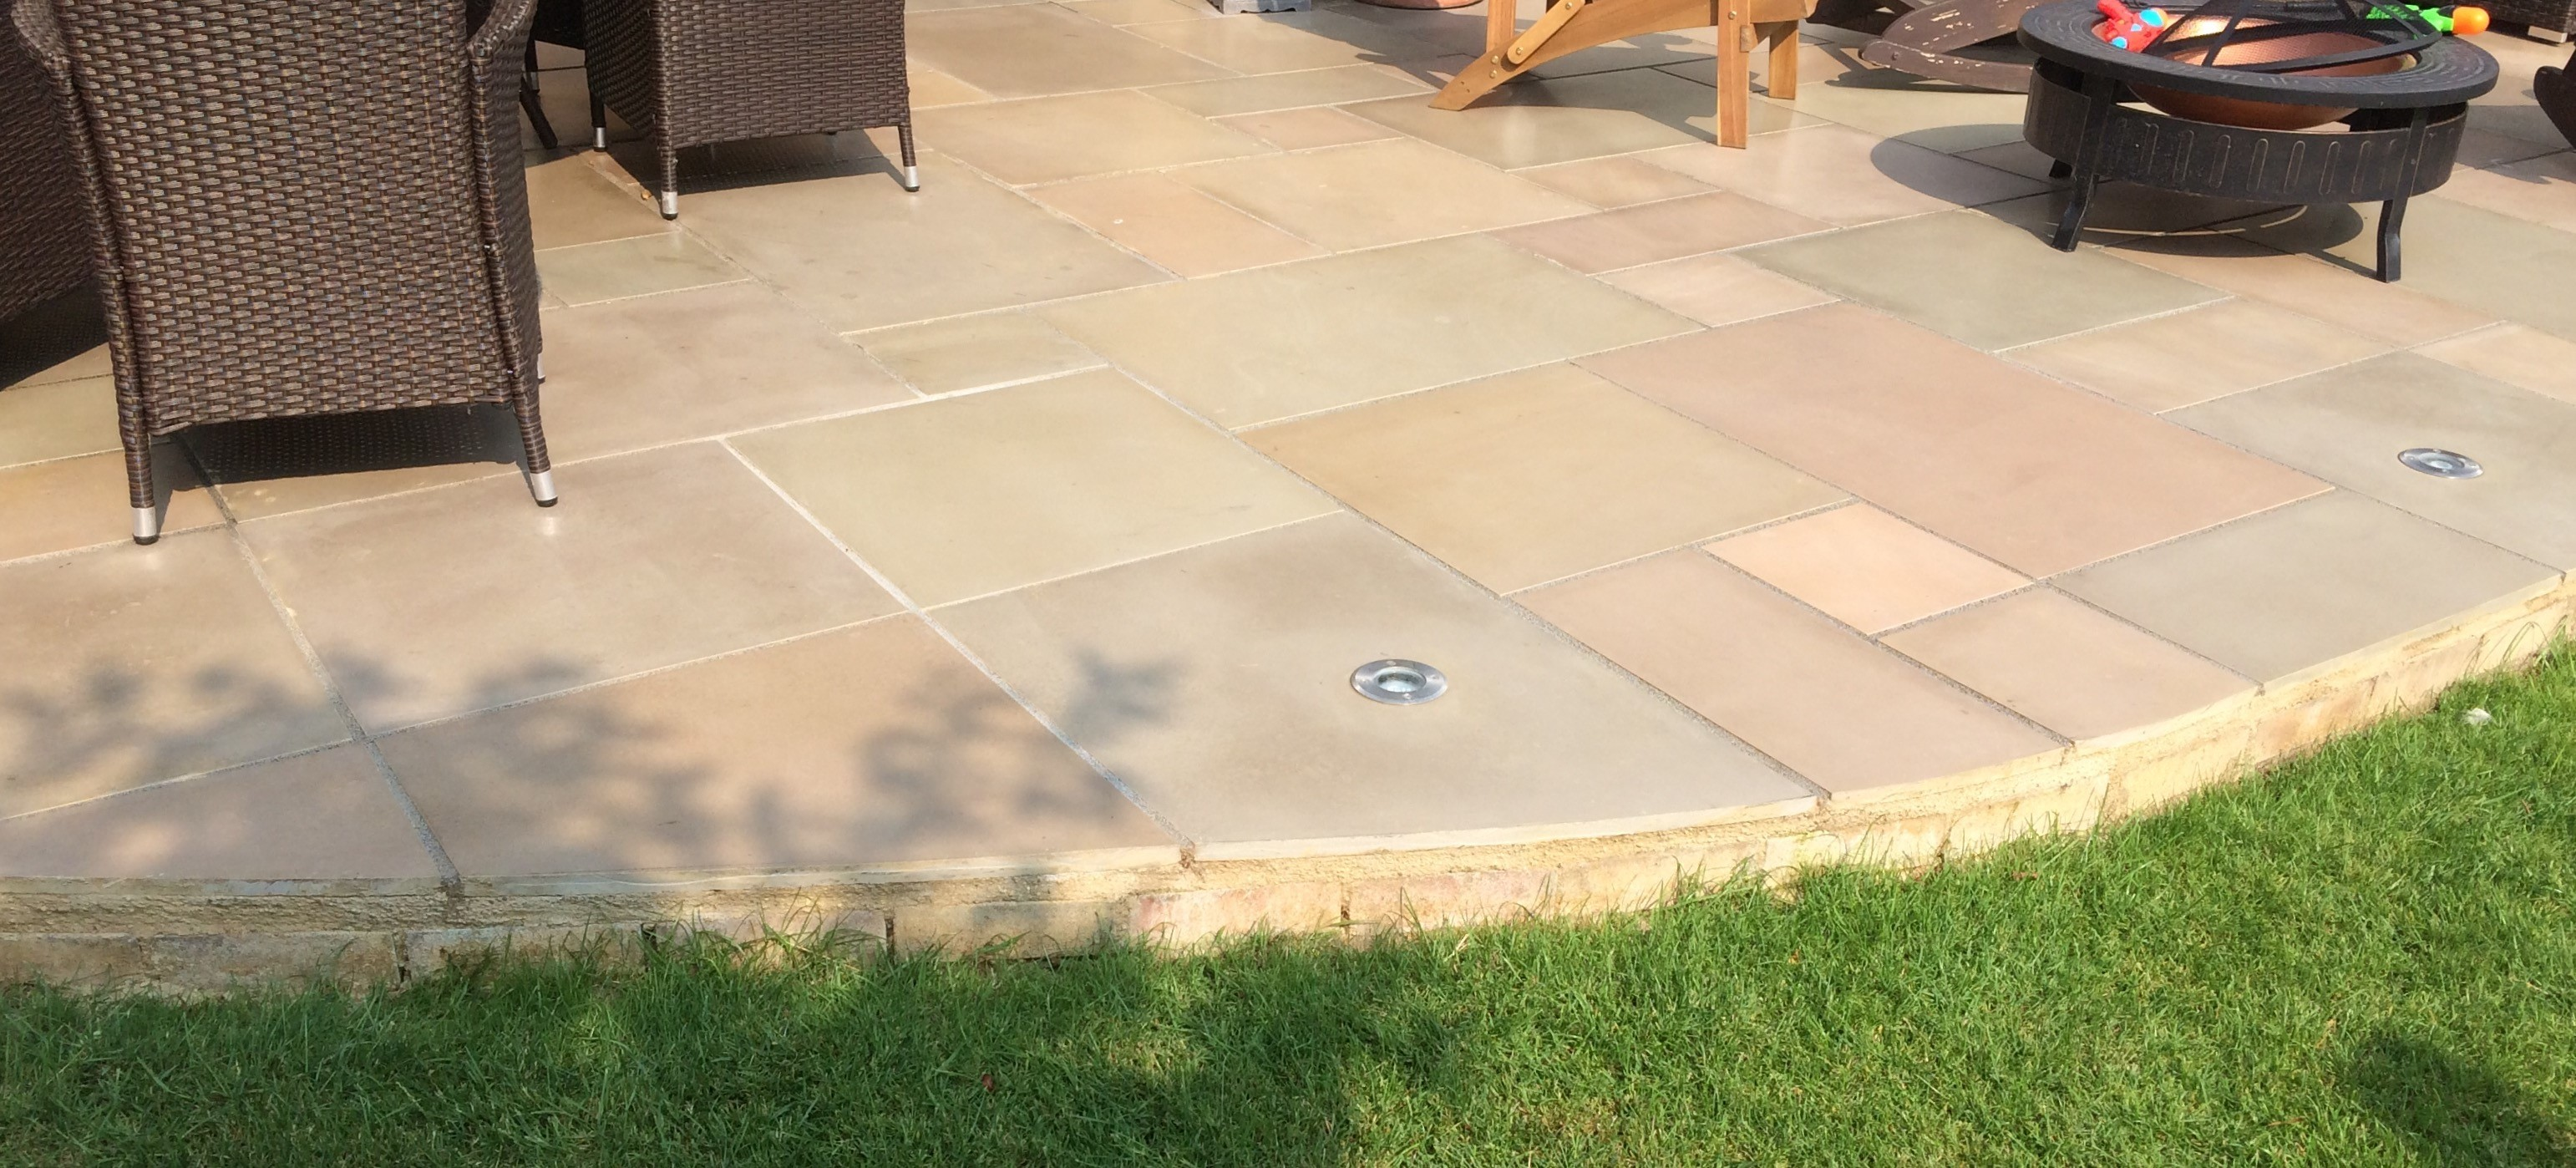 Honed Raj Green Indian Sandstone Natural 22mm Calibrated Patio Paving Slabs Pack 18.5m2